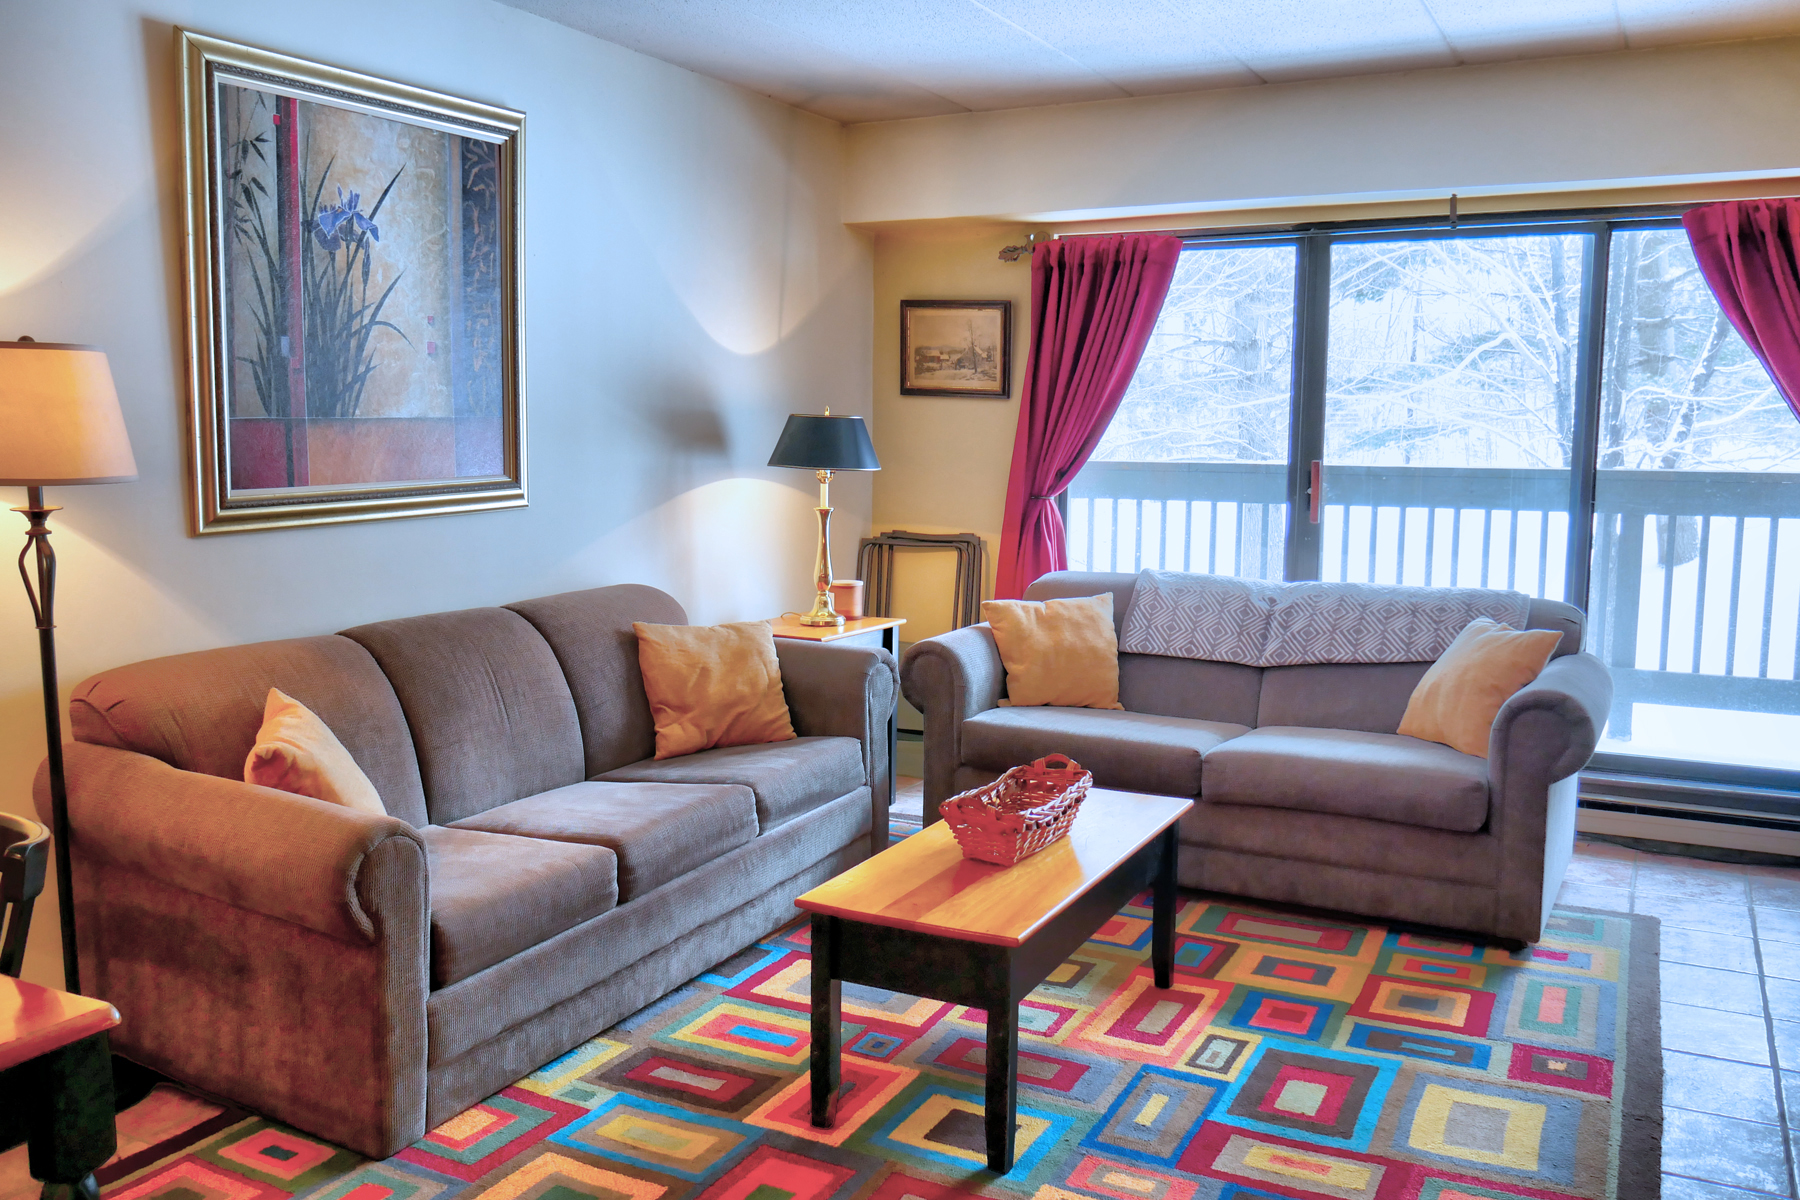 Condominiums for Sale at 137 East Mountain Road 2B2, Killington 137 East Mountain Rd 2B2 Killington, Vermont 05751 United States